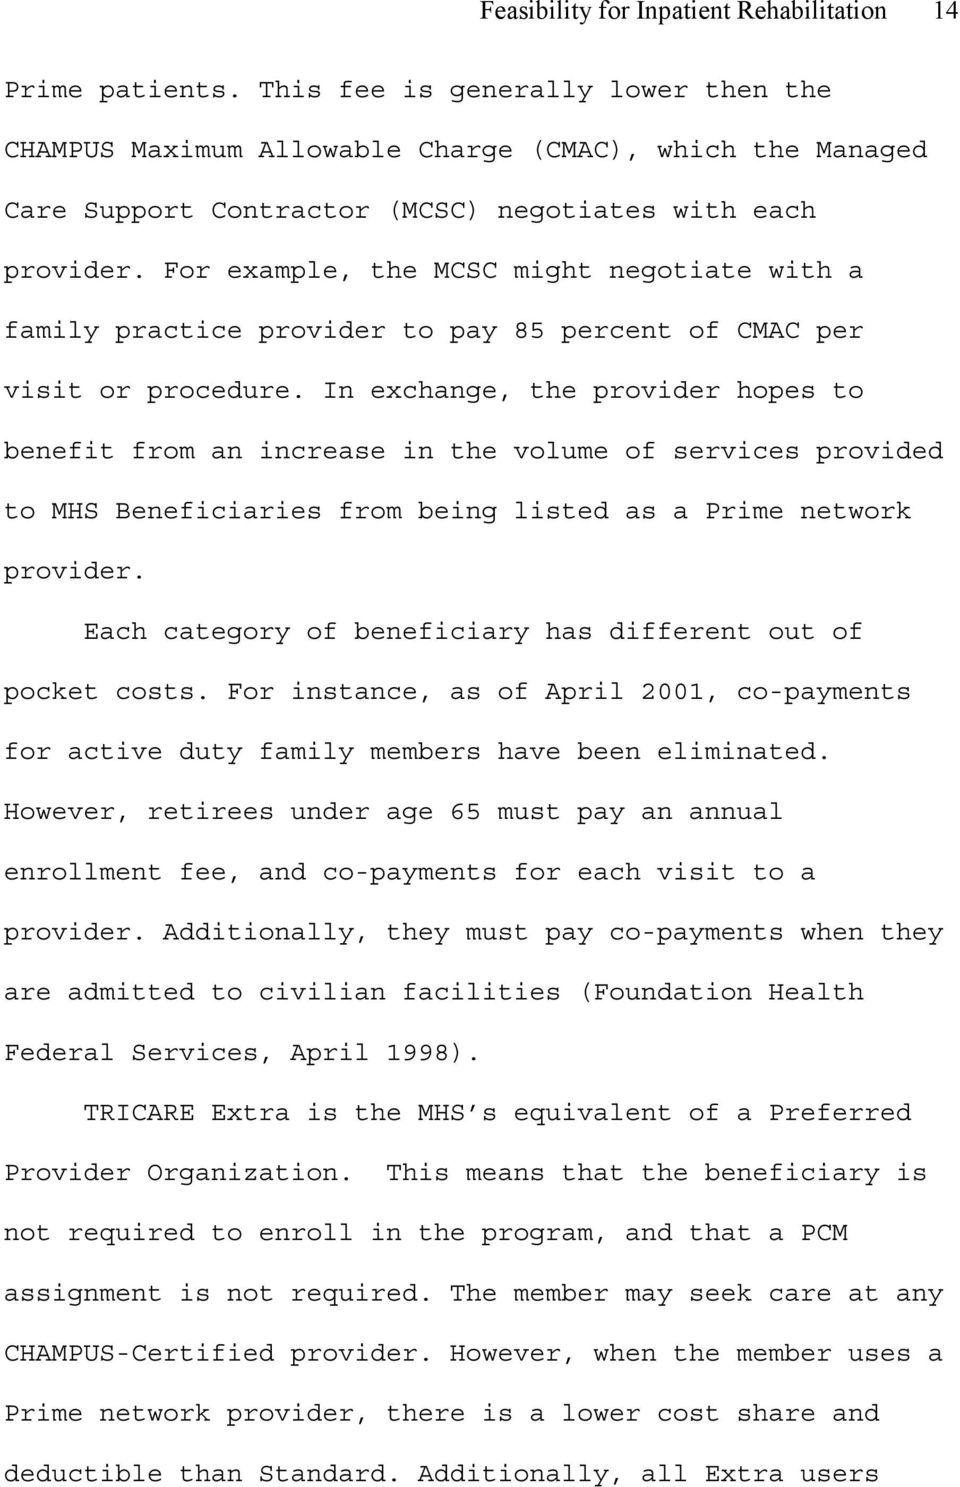 For example, the MCSC might negotiate with a family practice provider to pay 85 percent of CMAC per visit or procedure.